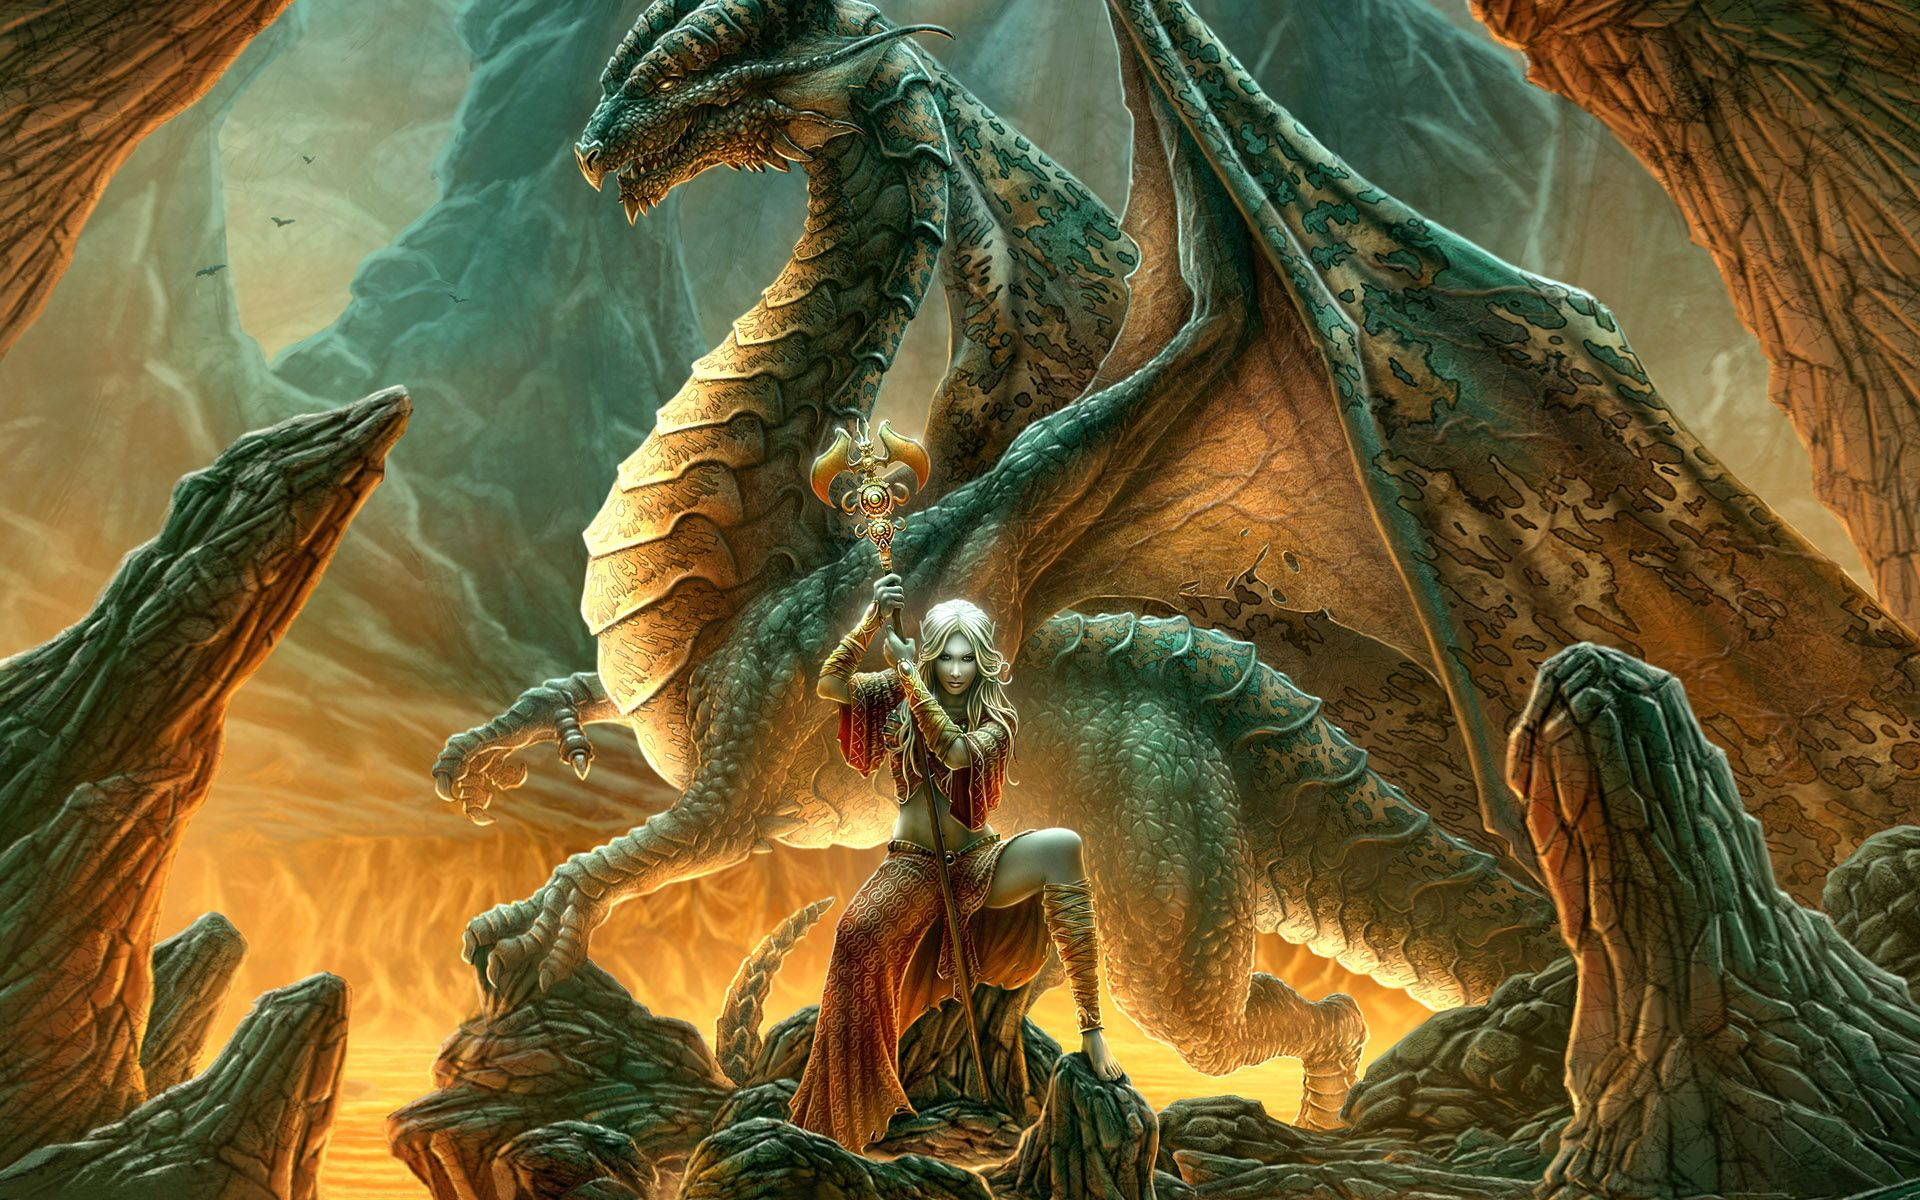 Google Image Result For Http Www Imgbase Info Images Safe Wallpapers Miscellaneous Fantasy 20586 Fantasy Dragon Jpg Fantasy Dragon Dragon Rider Fairy Dragon